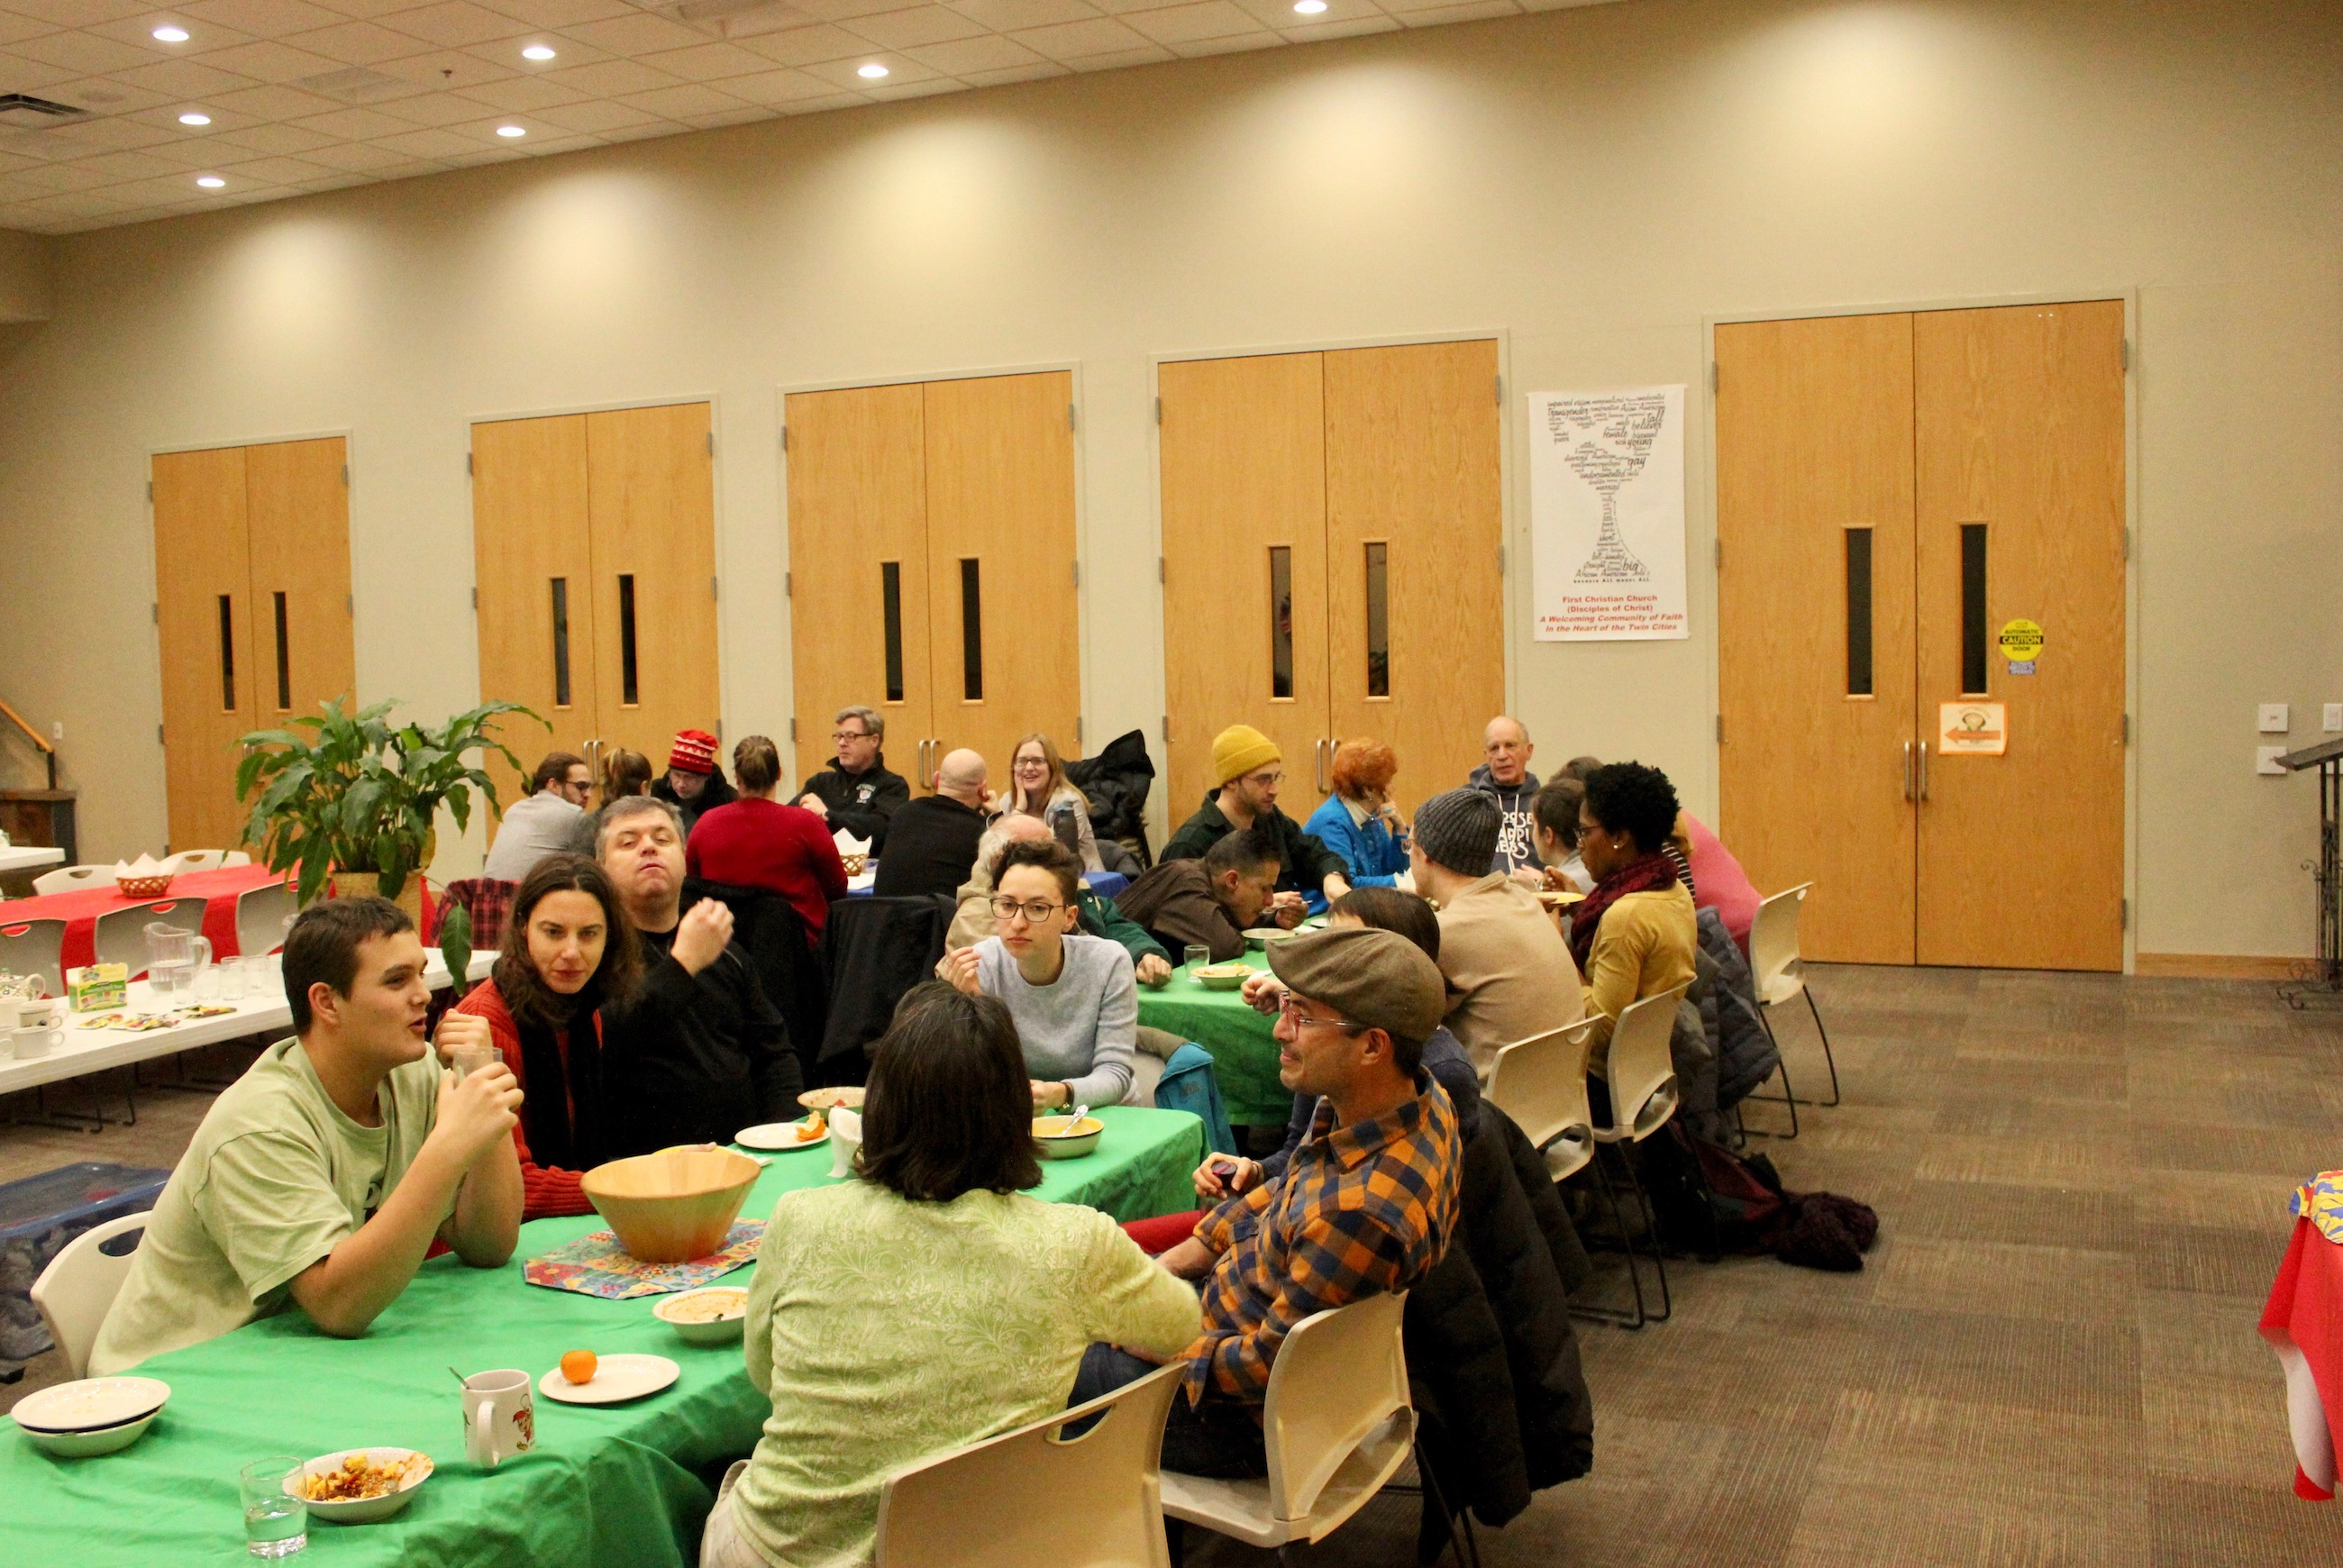 Lowry Hill East residents gathered for a Wedge Community Meal at SpringHouse Ministry Center on Jan. 8. Photo by Andrew Hazzard.